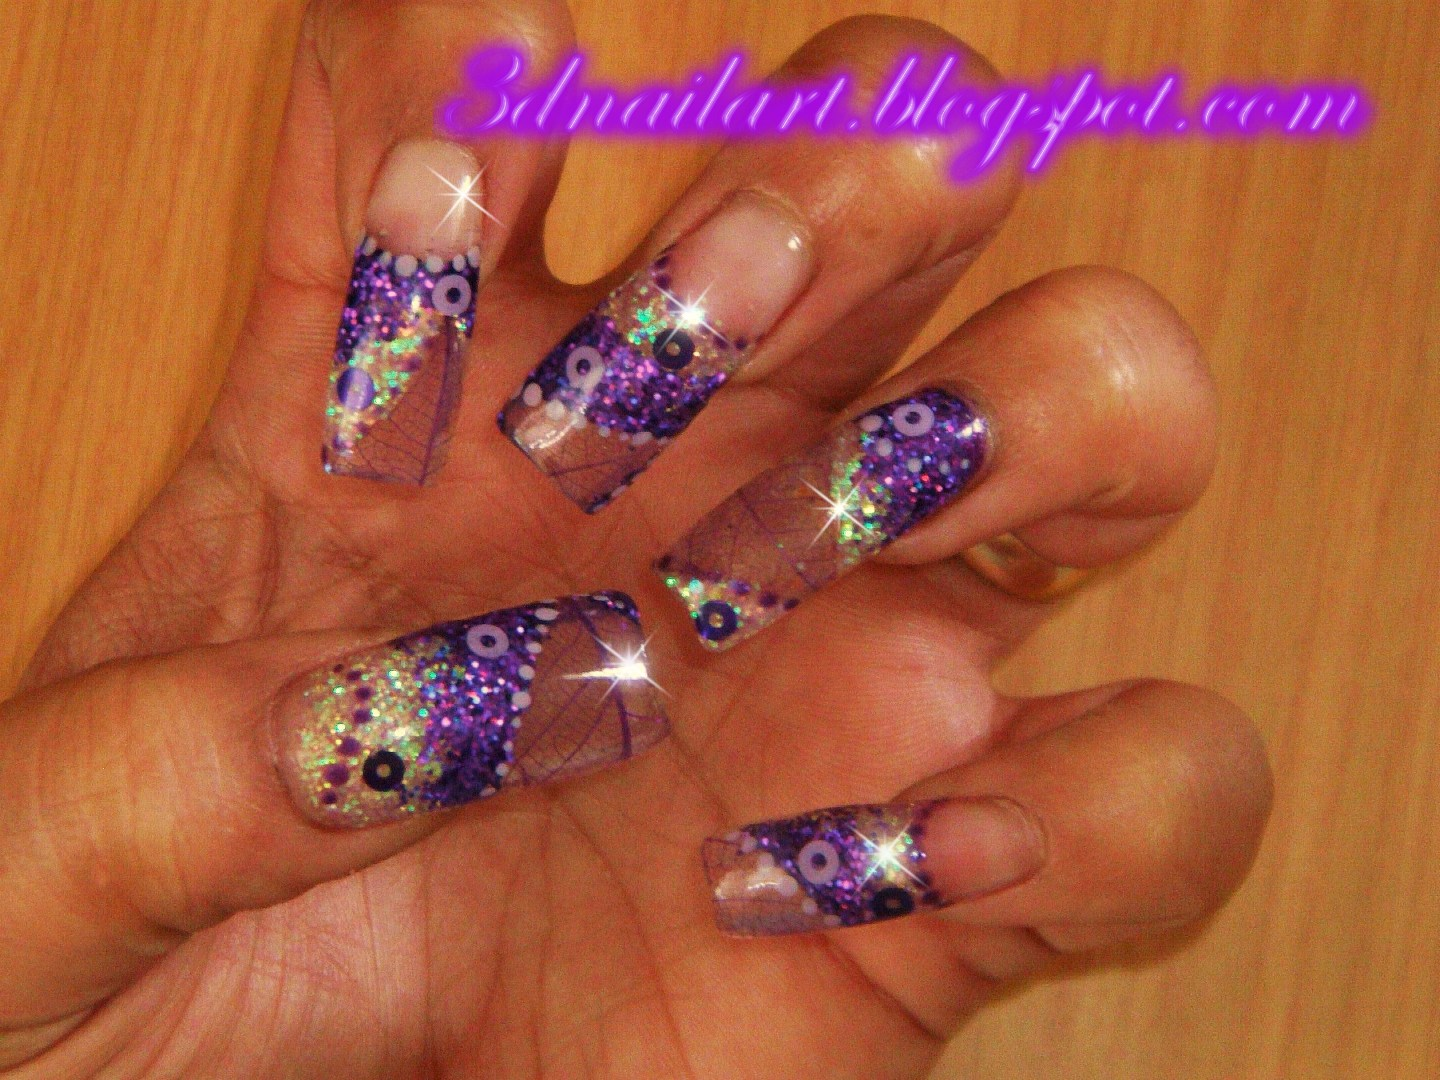 Fall Acrylic Nail Designs http://3dnailart.blogspot.com/2010/10/fall-acrylic-design-with-skeleton.html